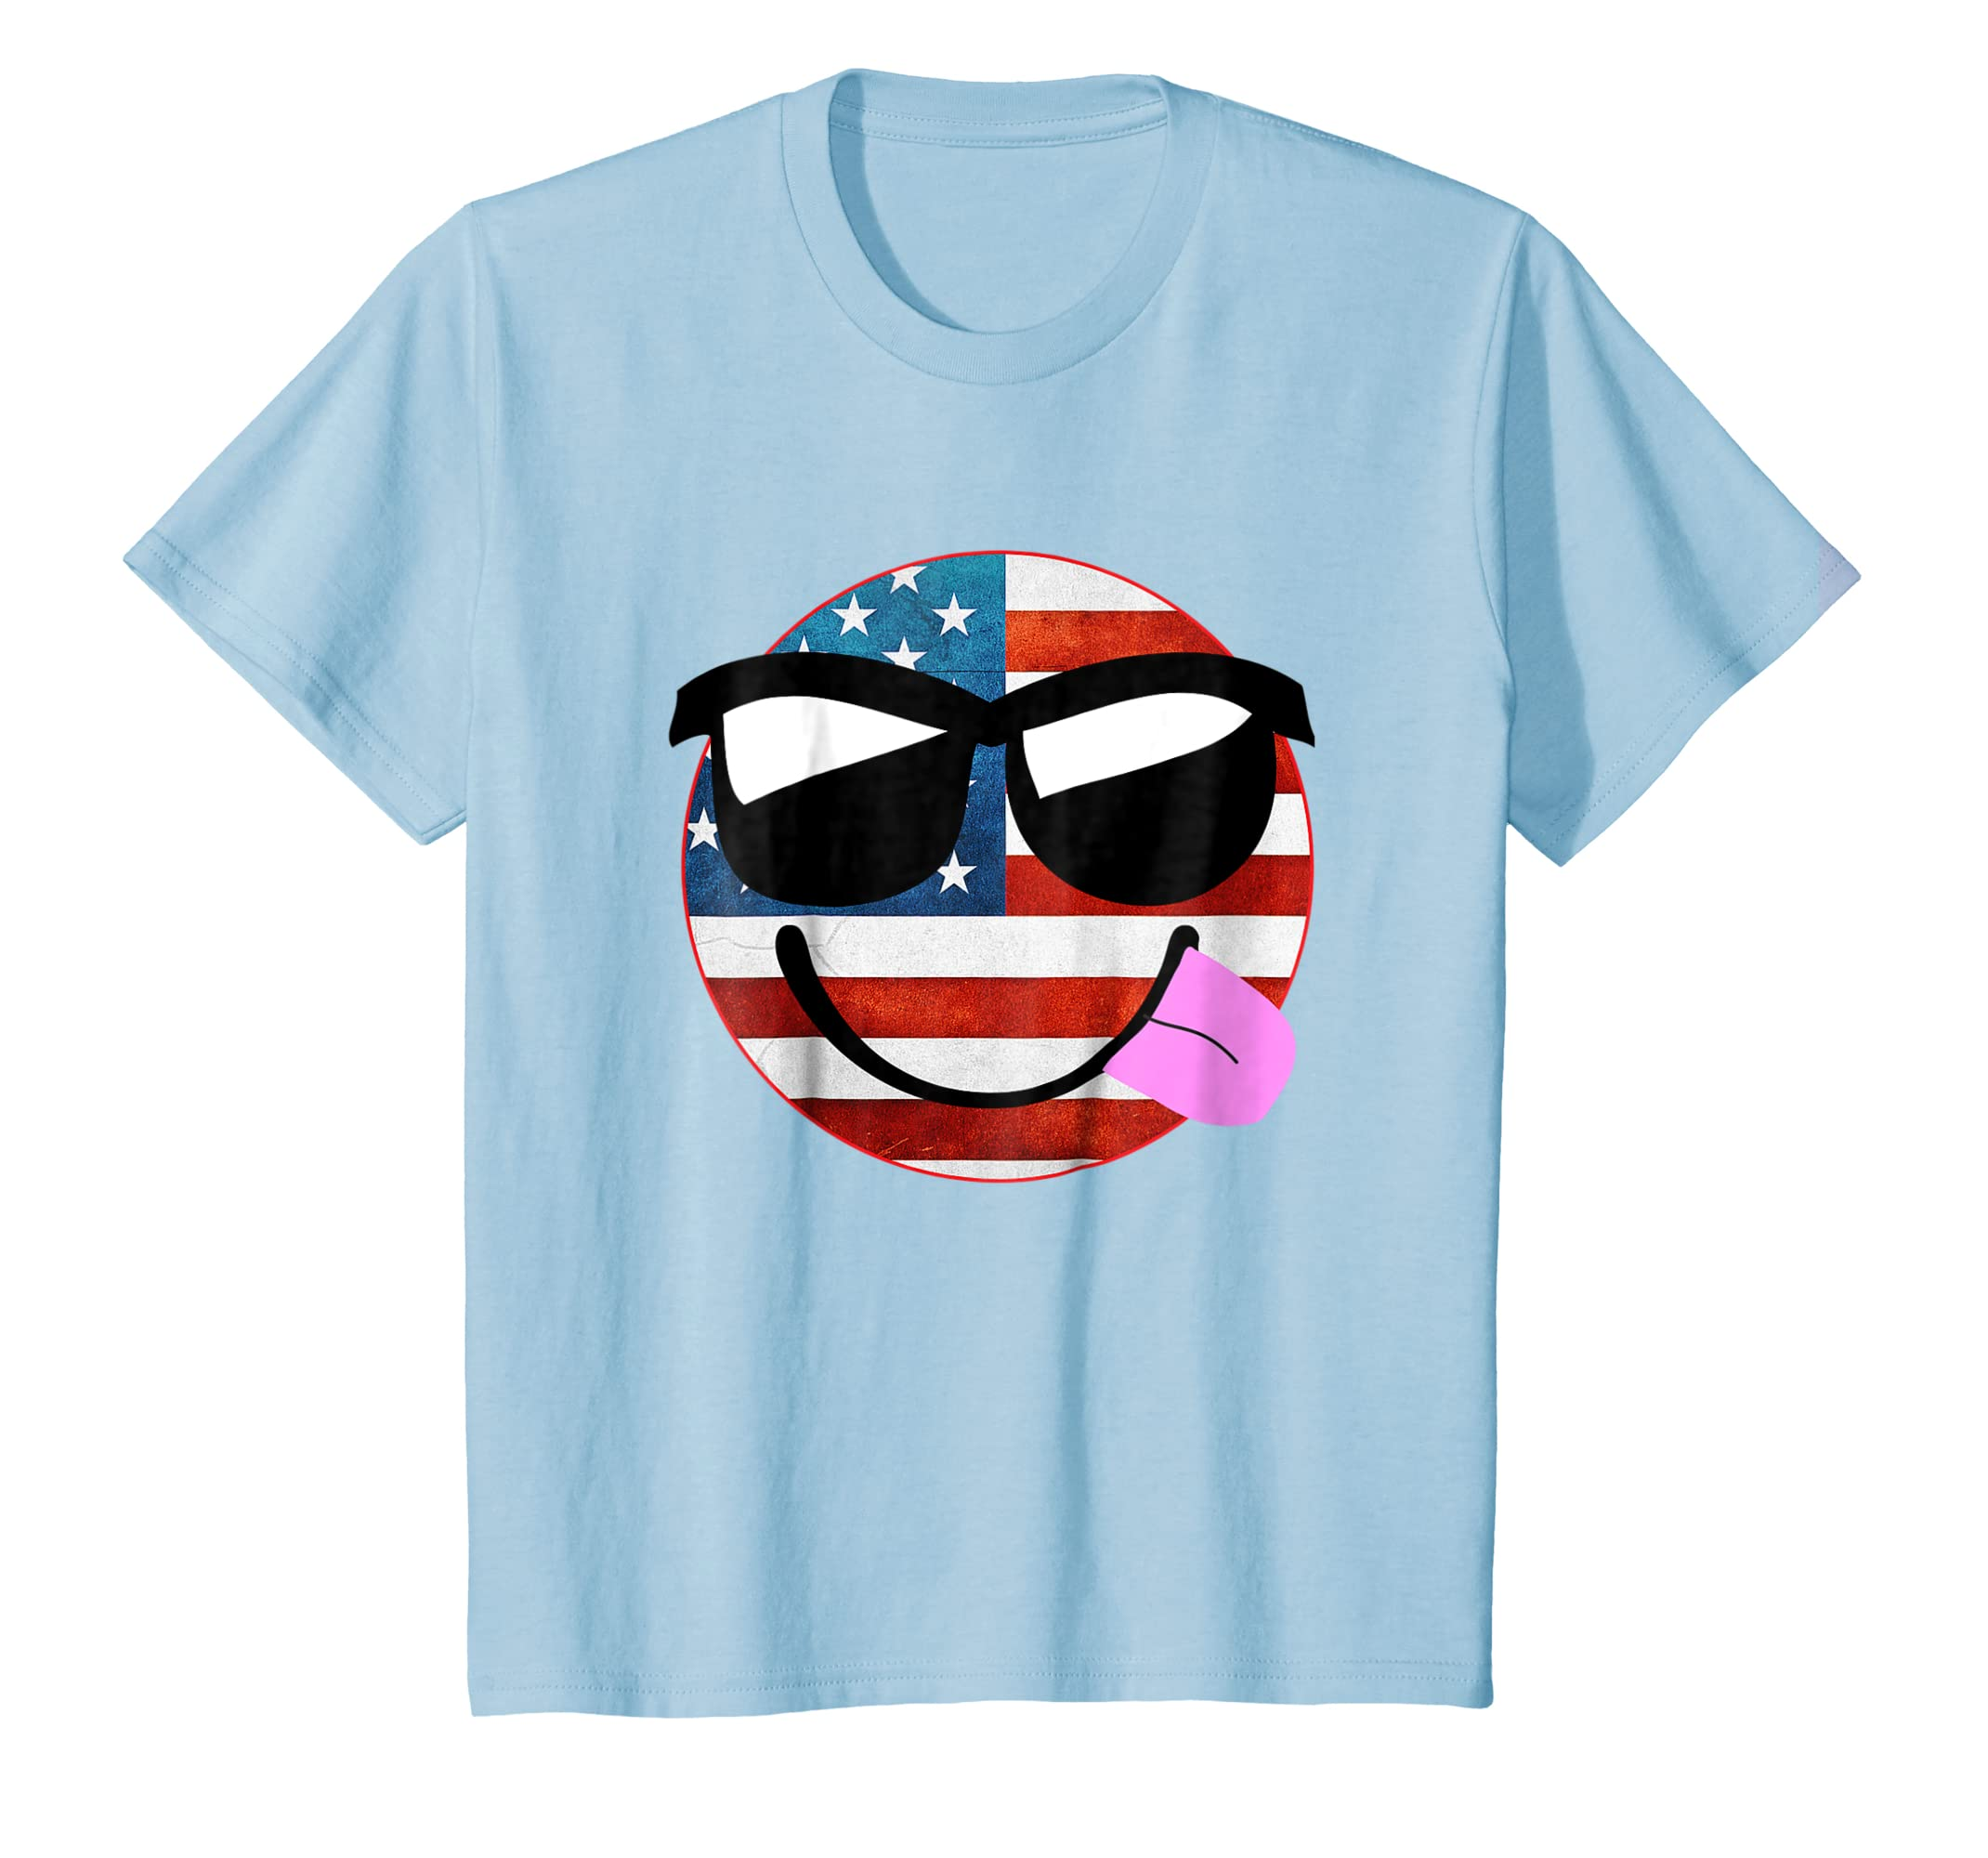 a3047f9ad6cd7 Amazon.com  Silly Sunglasses Patriotic Shirt Emoji US Flag Independence   Clothing